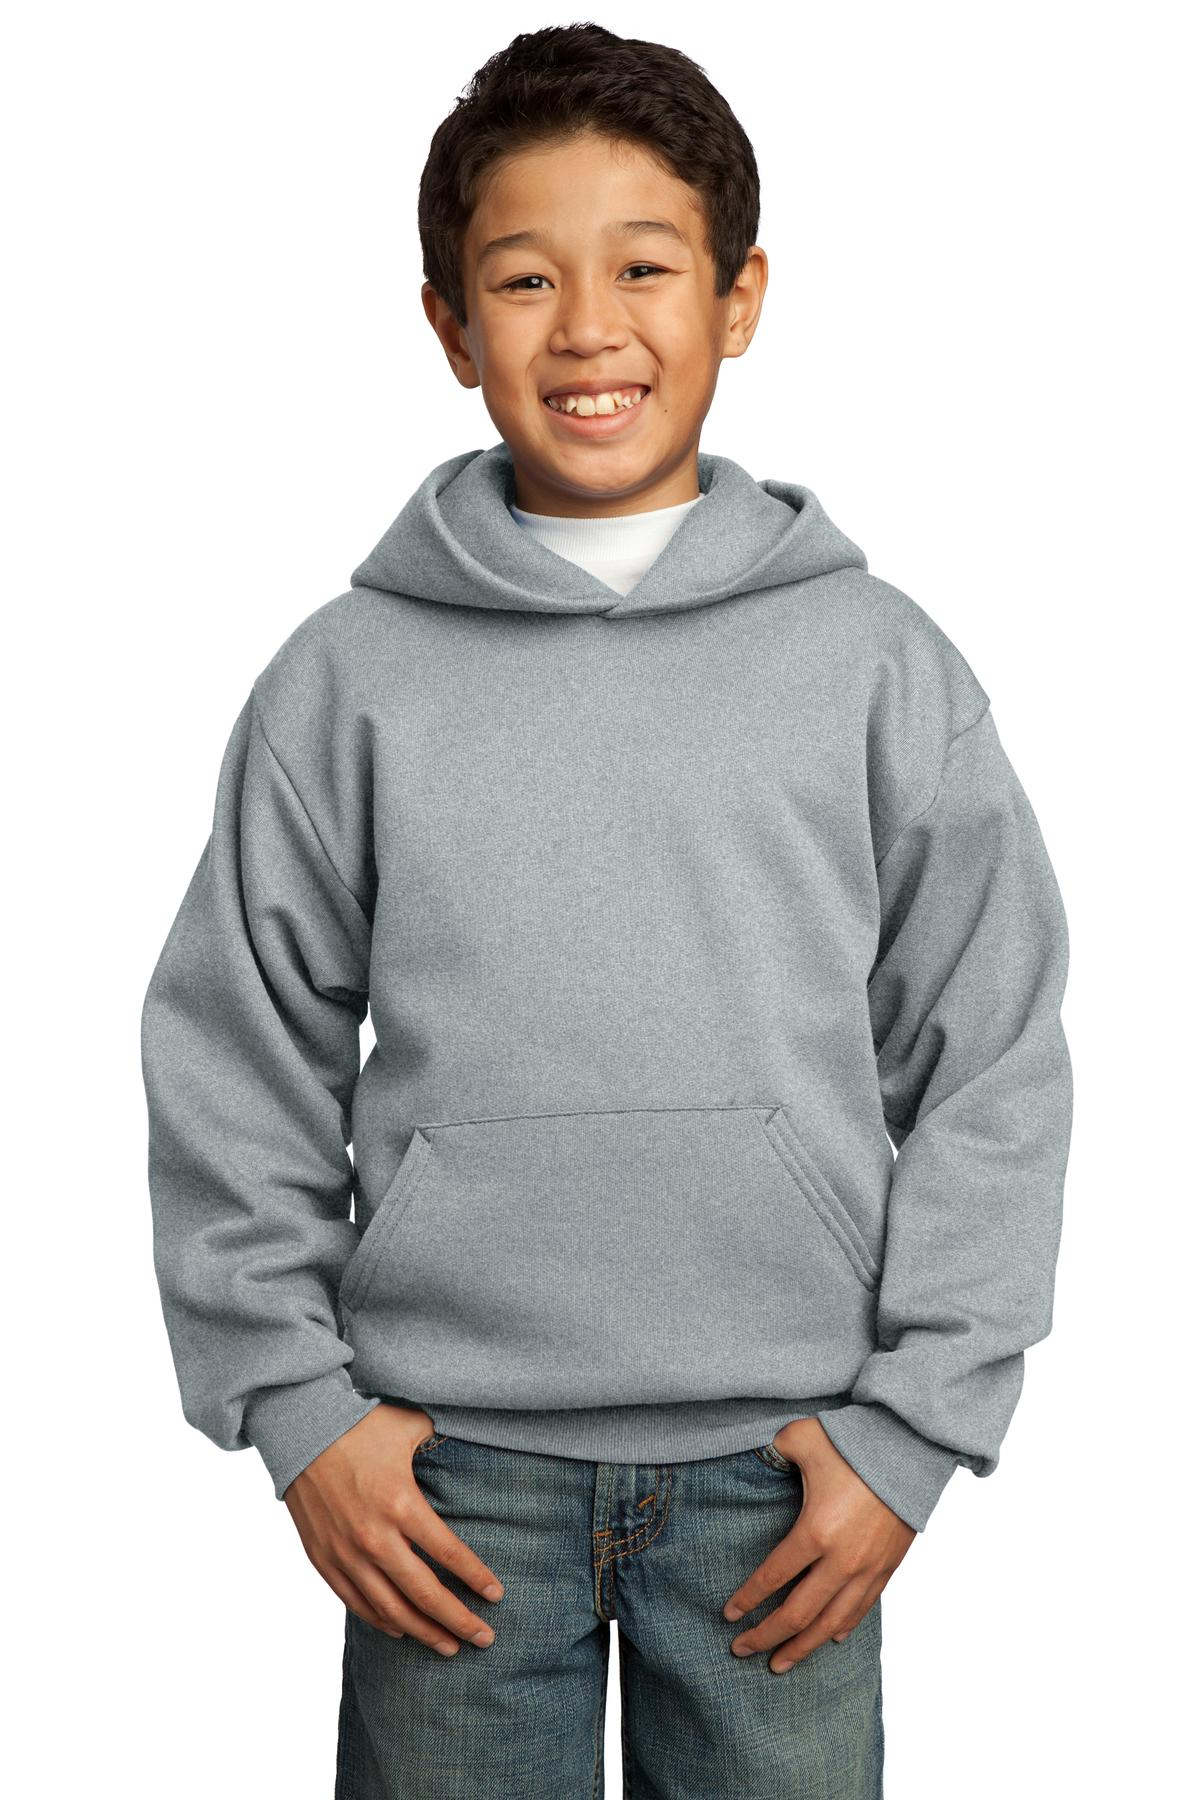 Athletic Heather Port & Company - Youth Core Fleece Pullover Hooded Sweatshirt.